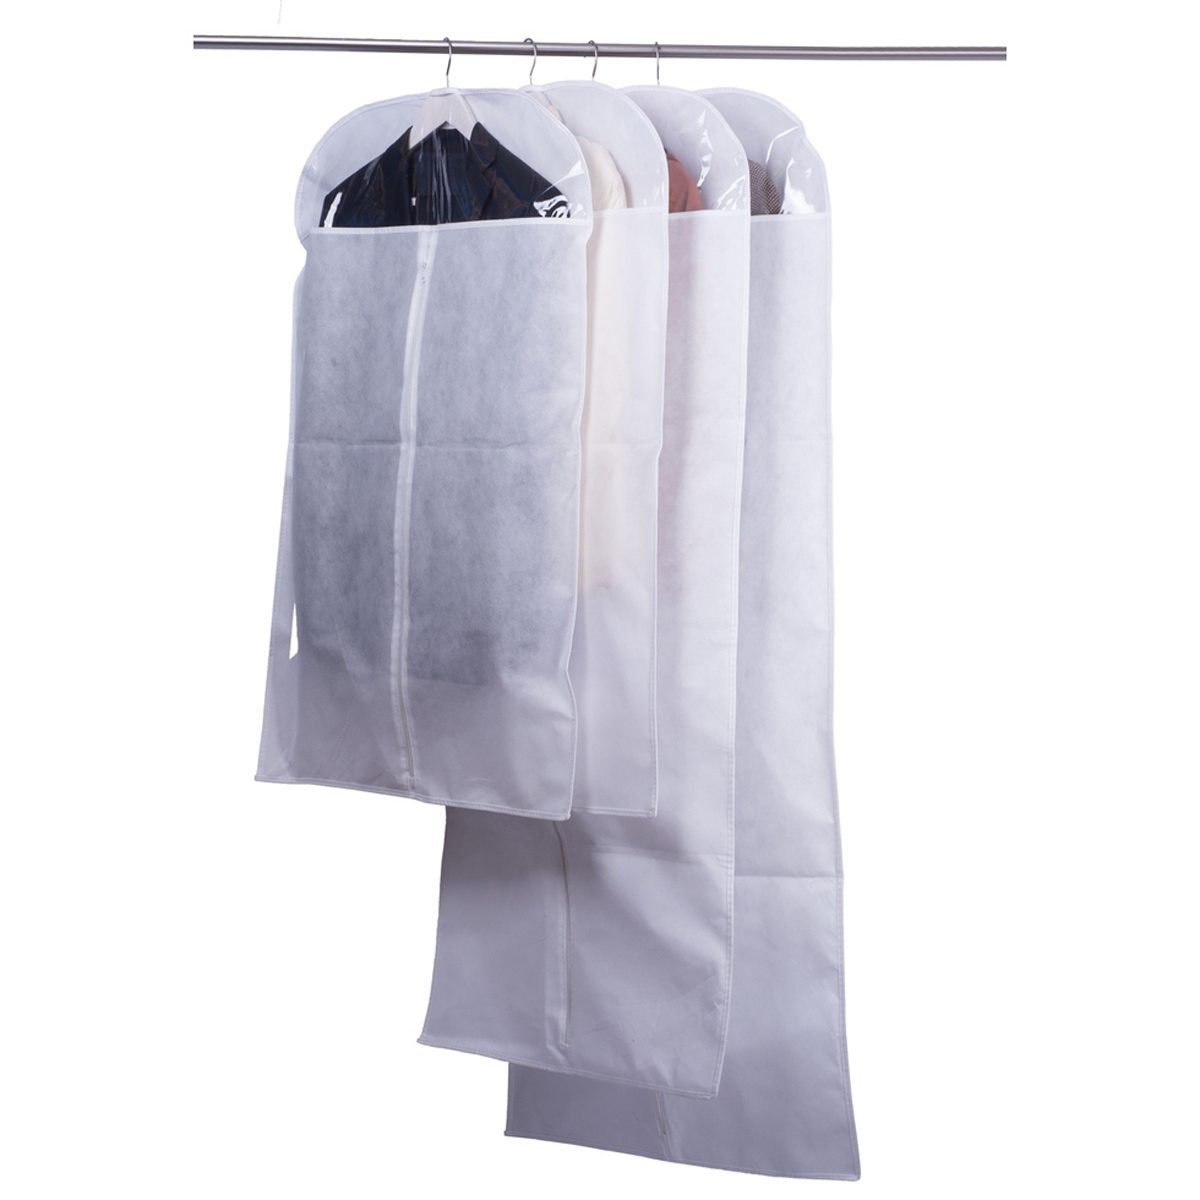 Best Way to Store Clothes: Cloth Garment Bags for Delicate Clothing